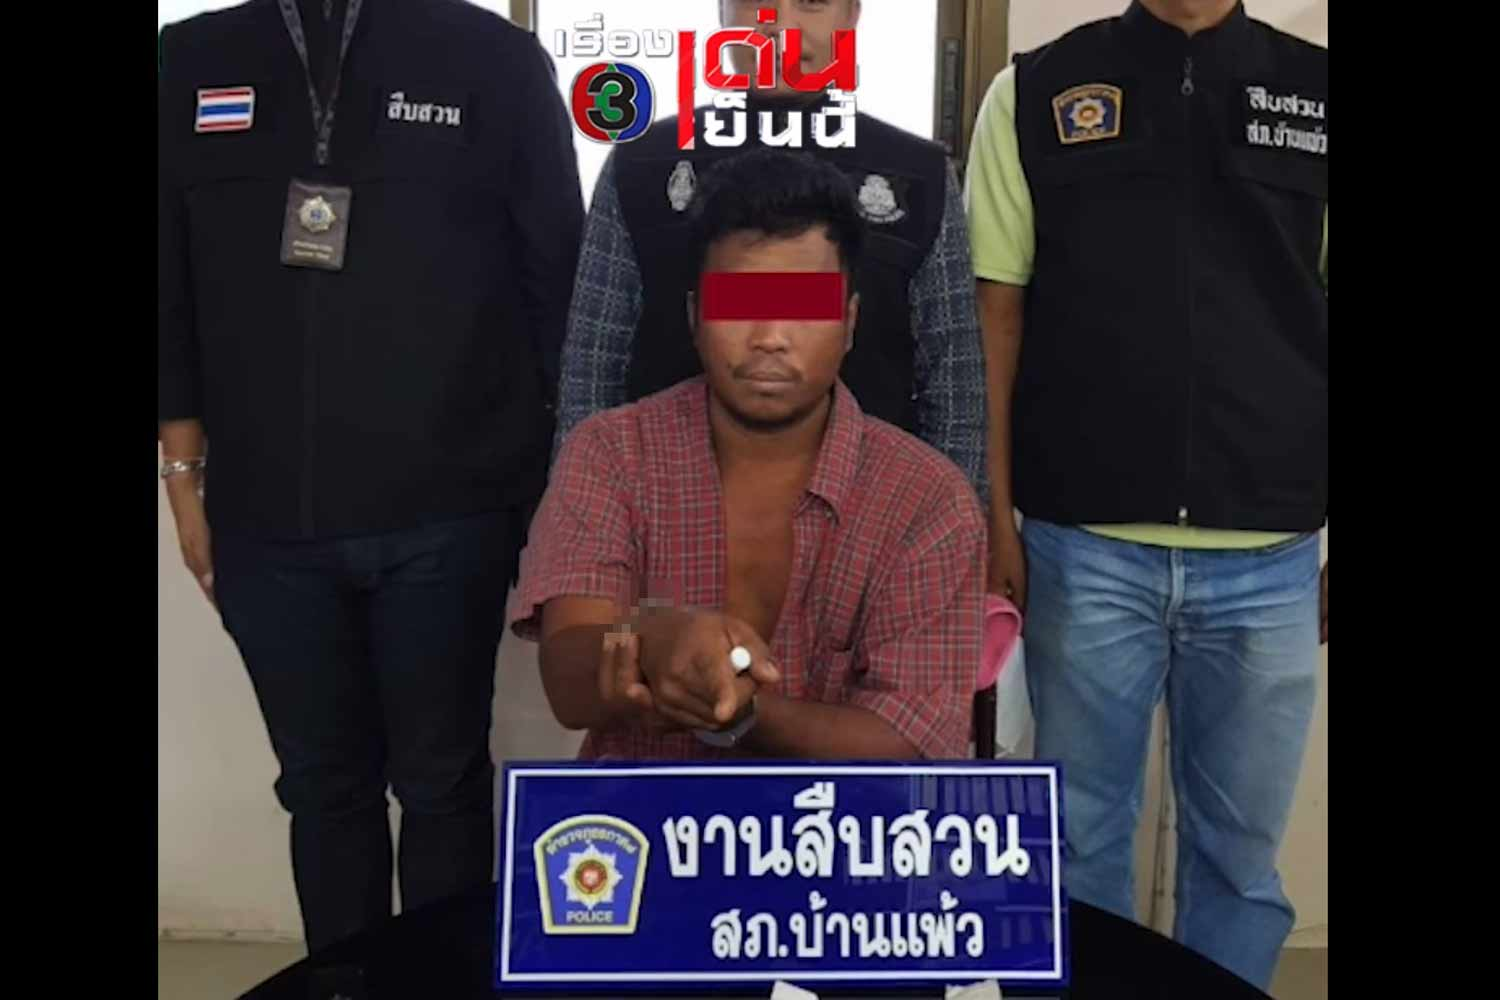 Yuth Wongthanom, 38, with police of the Ban Phaeo station in Samut Sakhon province on Wednesday after being arrested for methamphetamine possession at his home. (Screen capture from TV 3 channel)